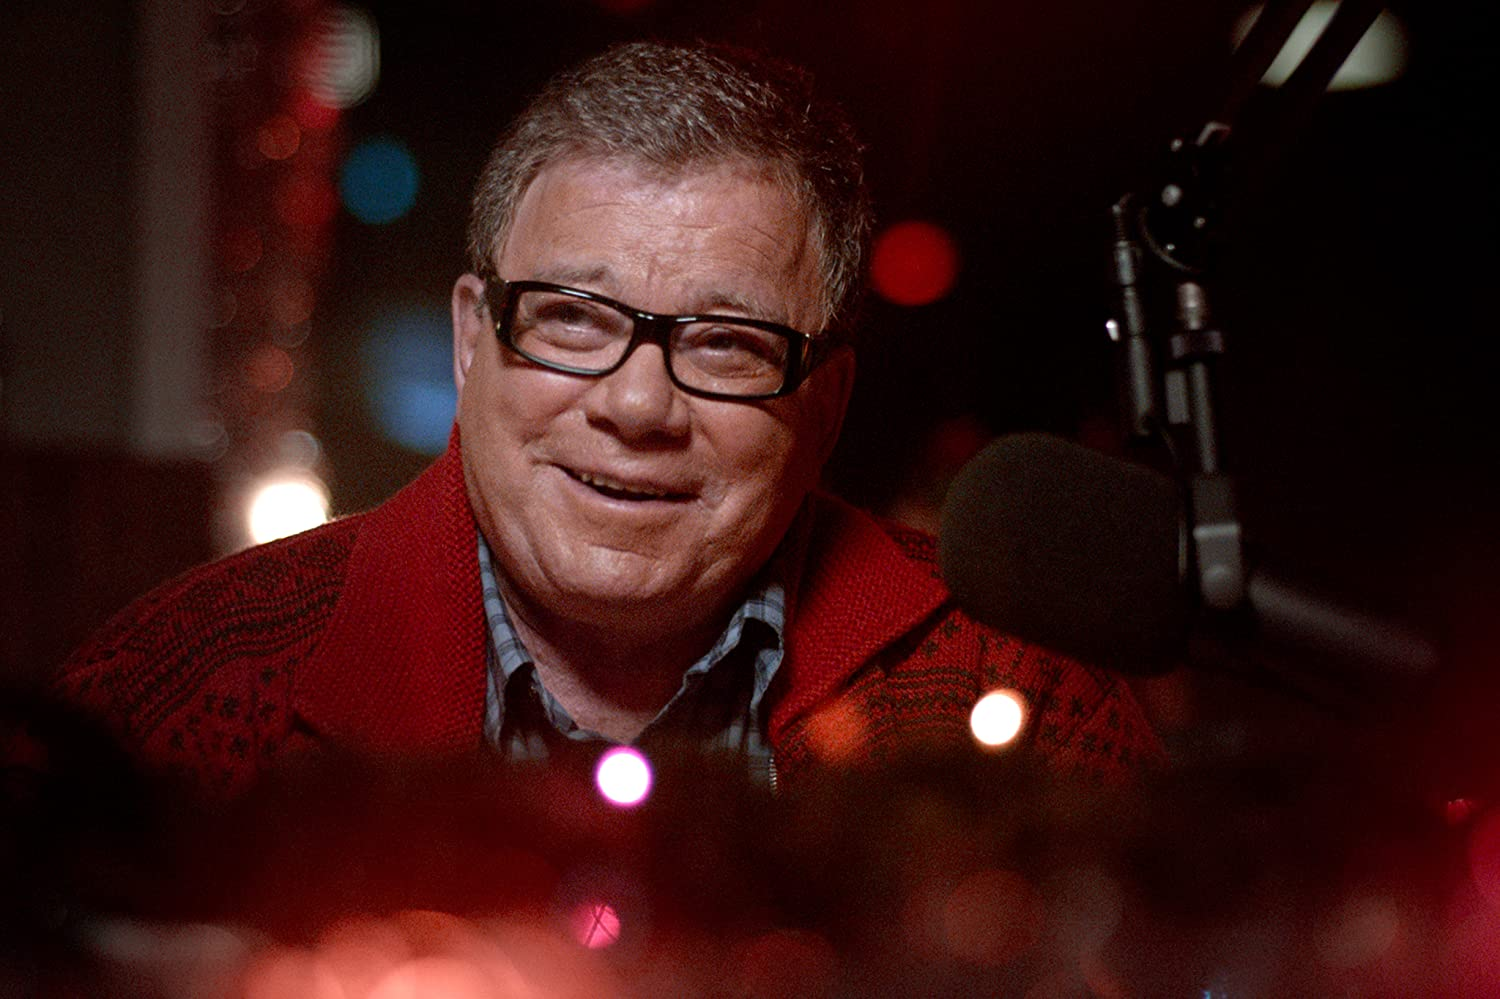 William Shatner in A Christmas Horror Story (2015)